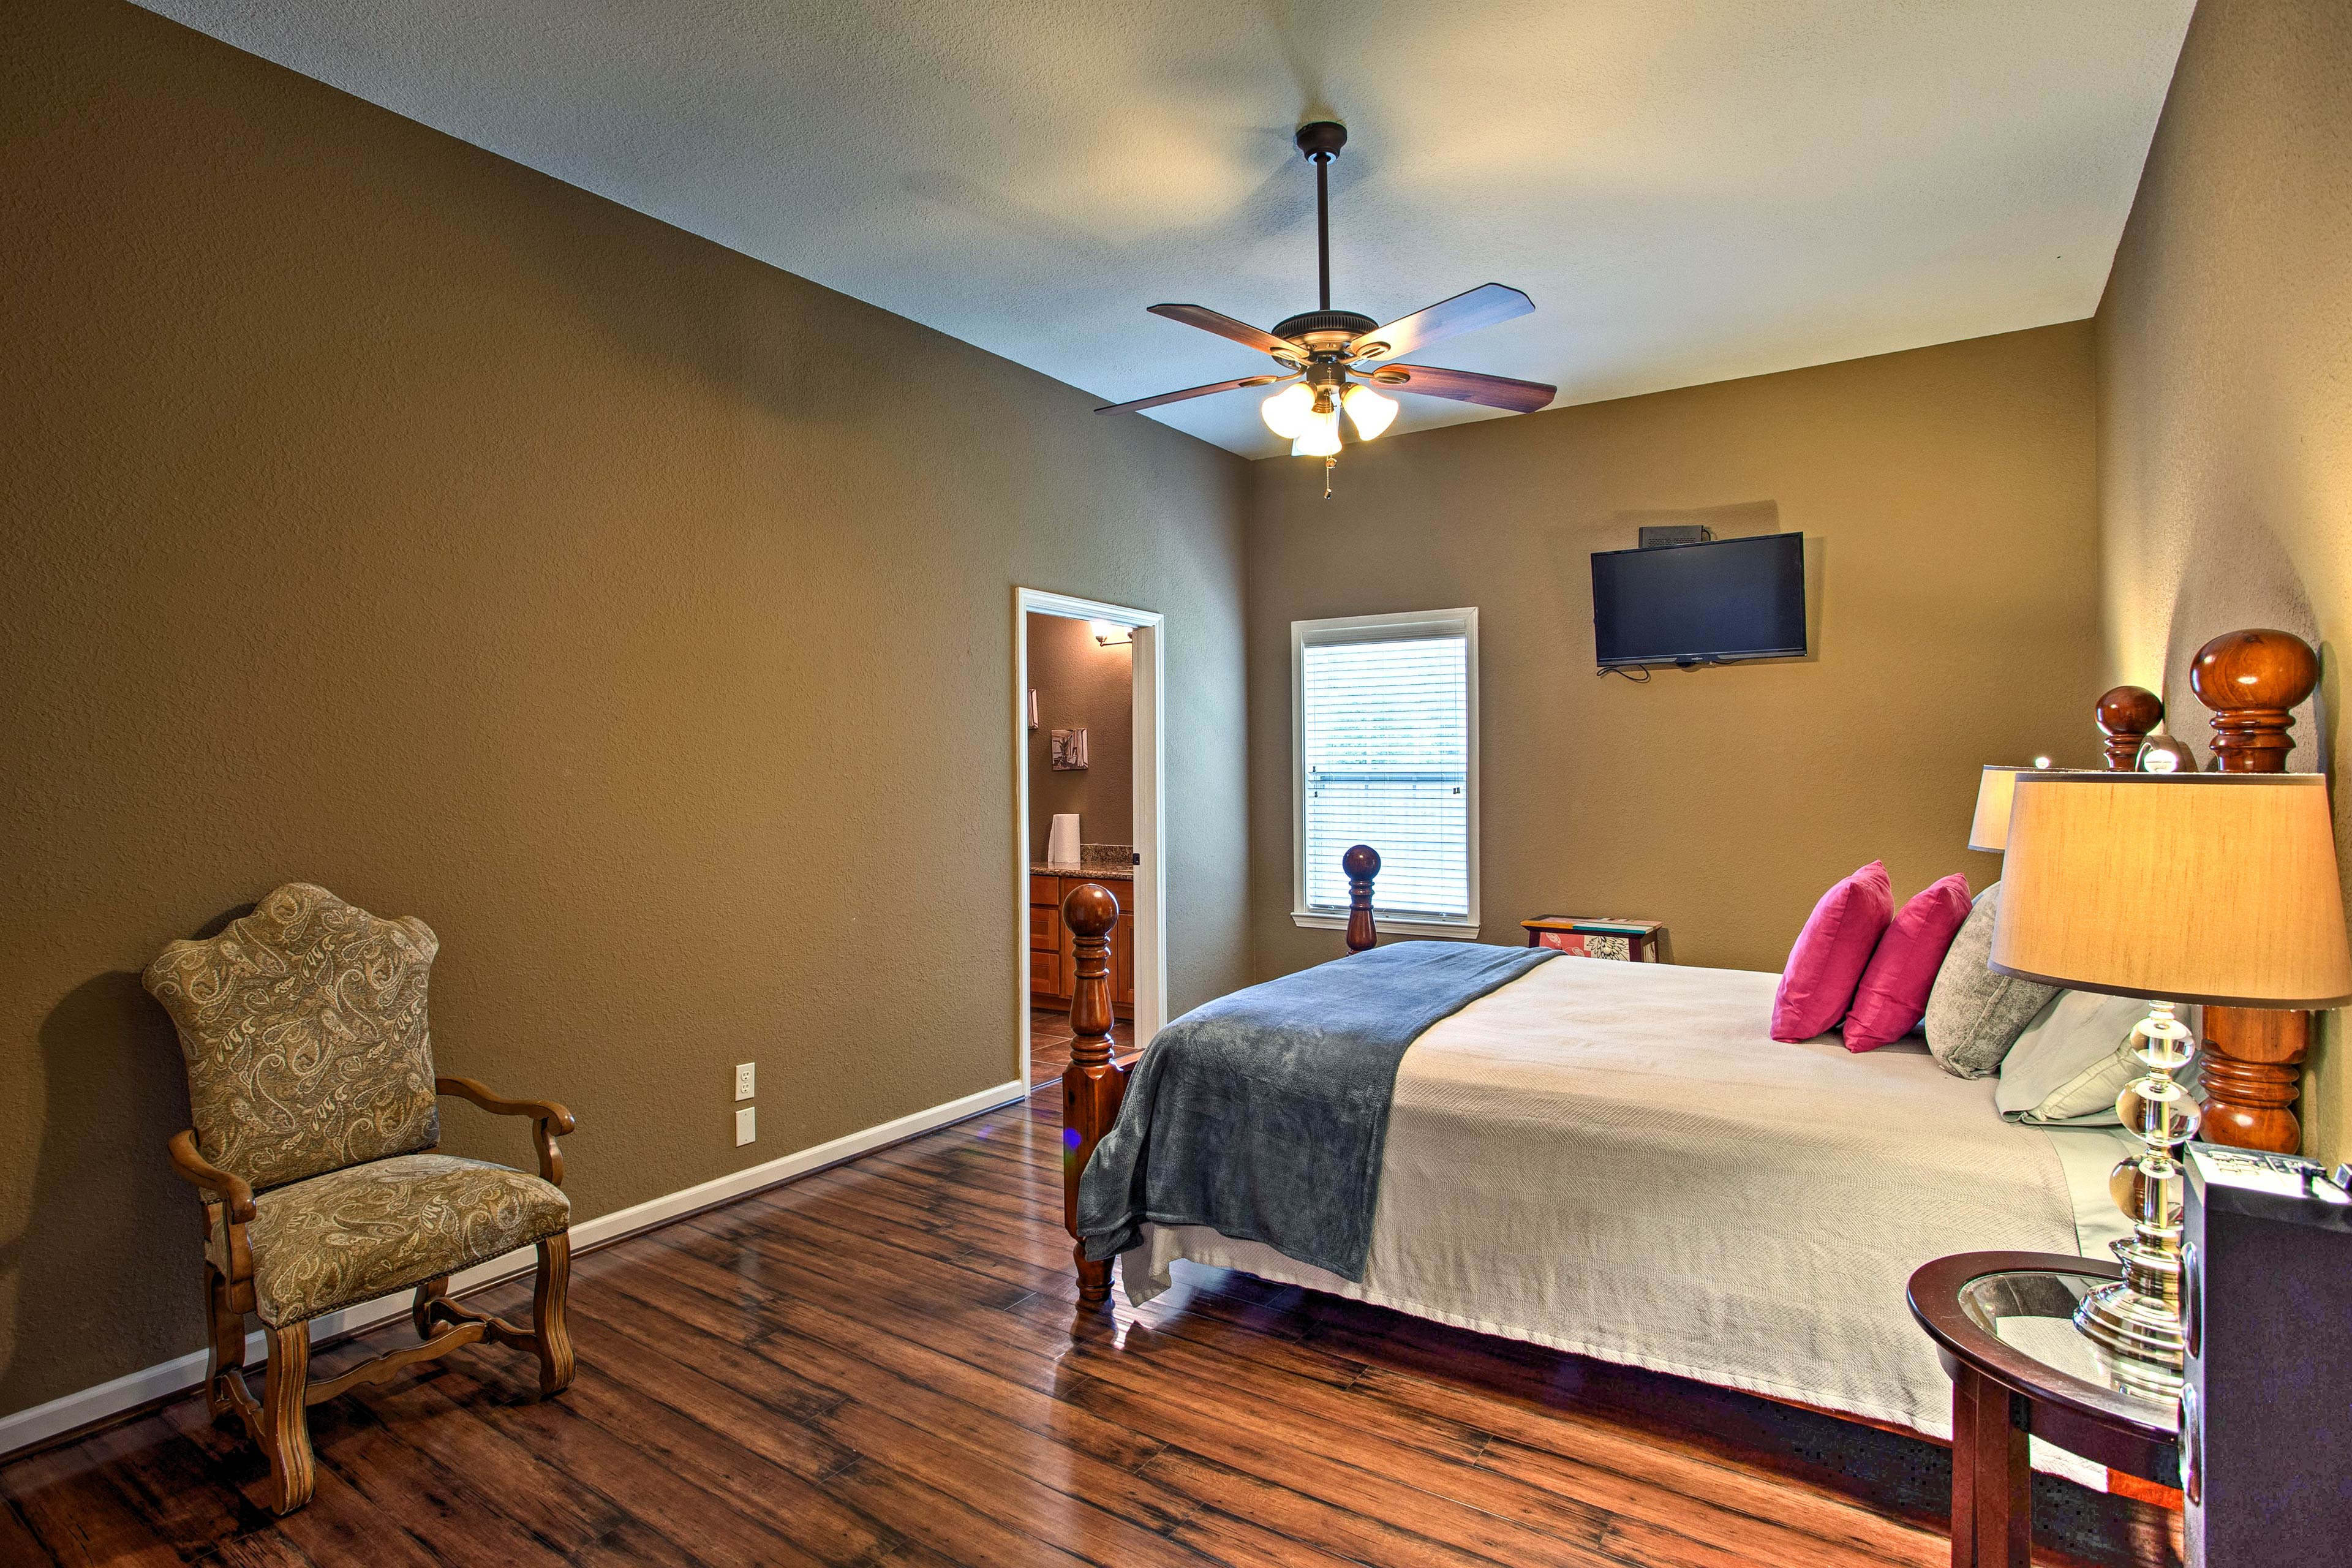 Four of the bedrooms feature flat-screen cable TVs.